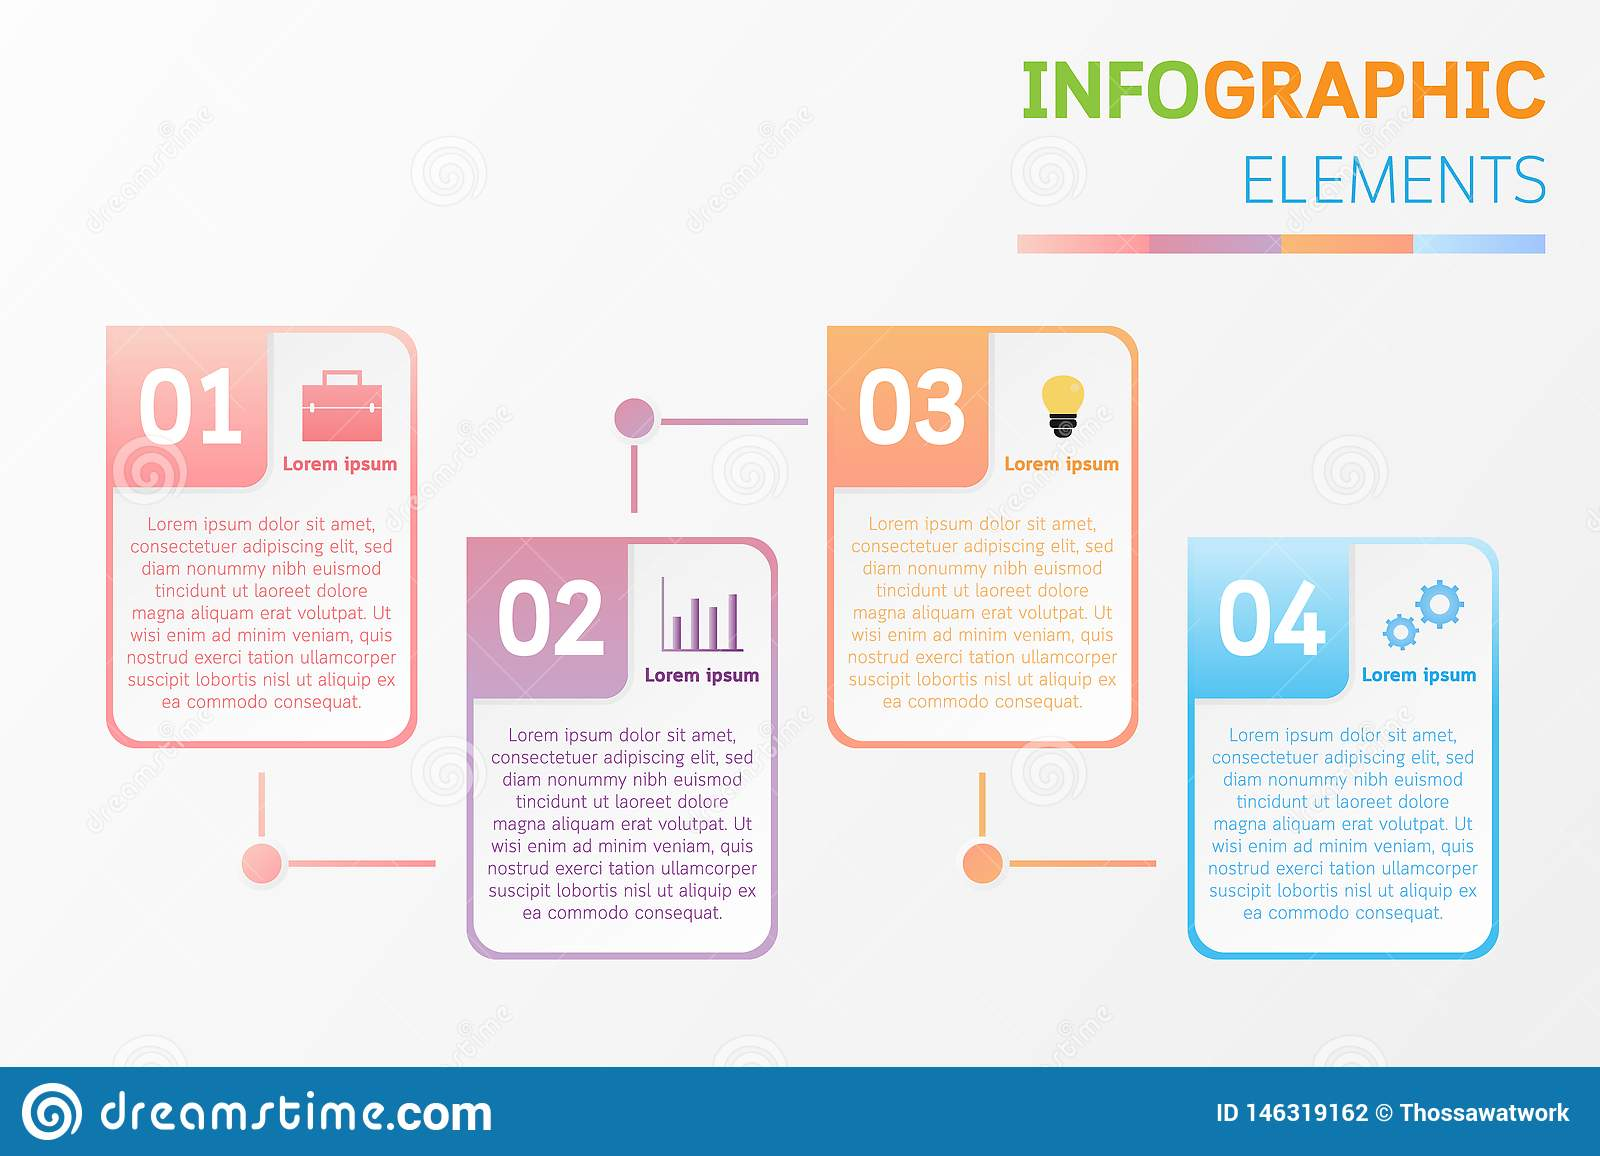 Infographic elements design with icons, number, text.